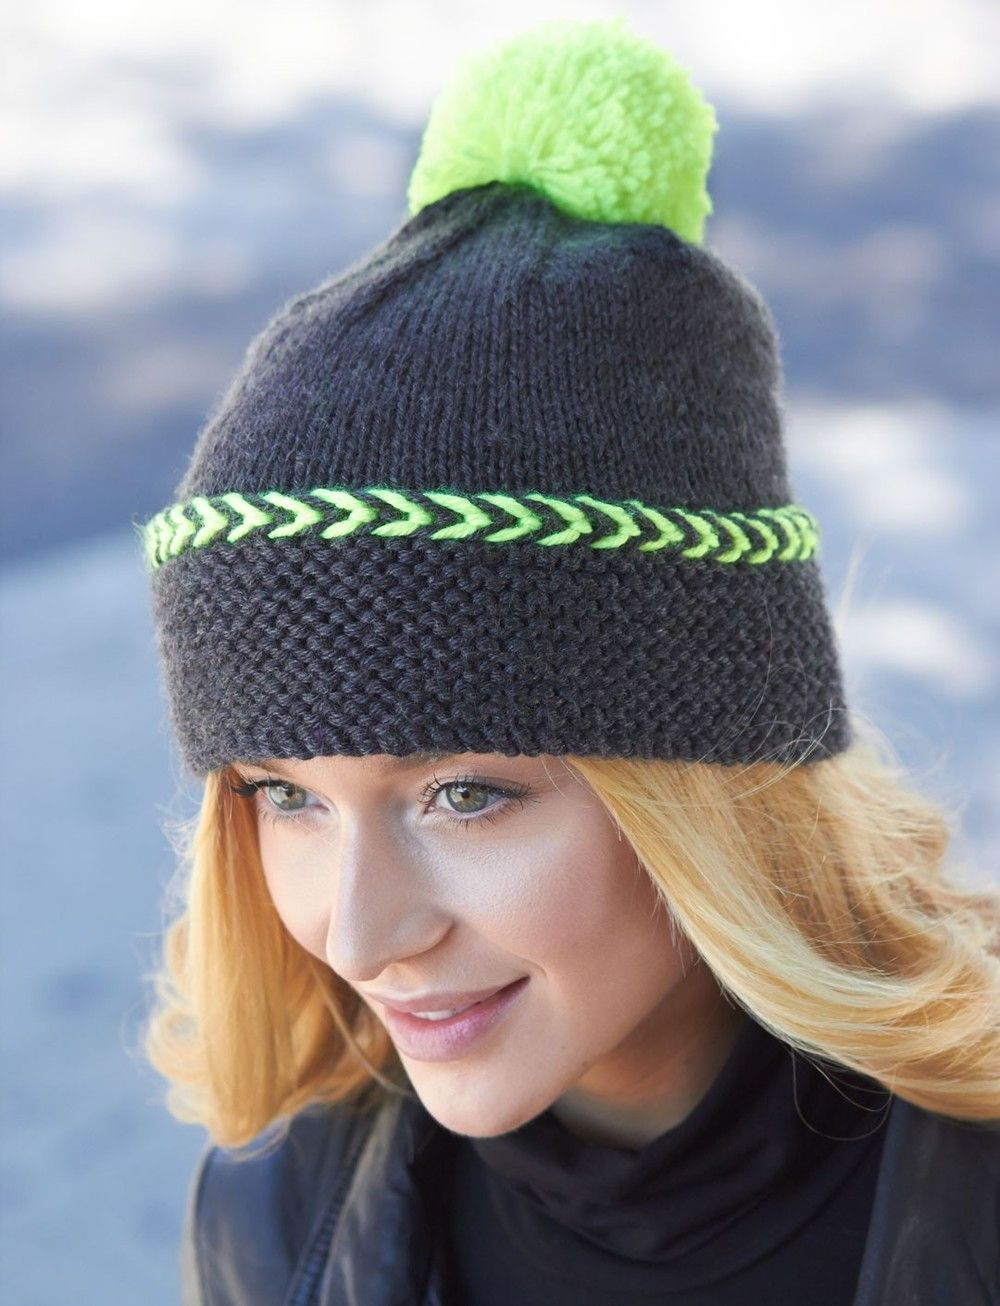 How to tie a hat with knitting needles